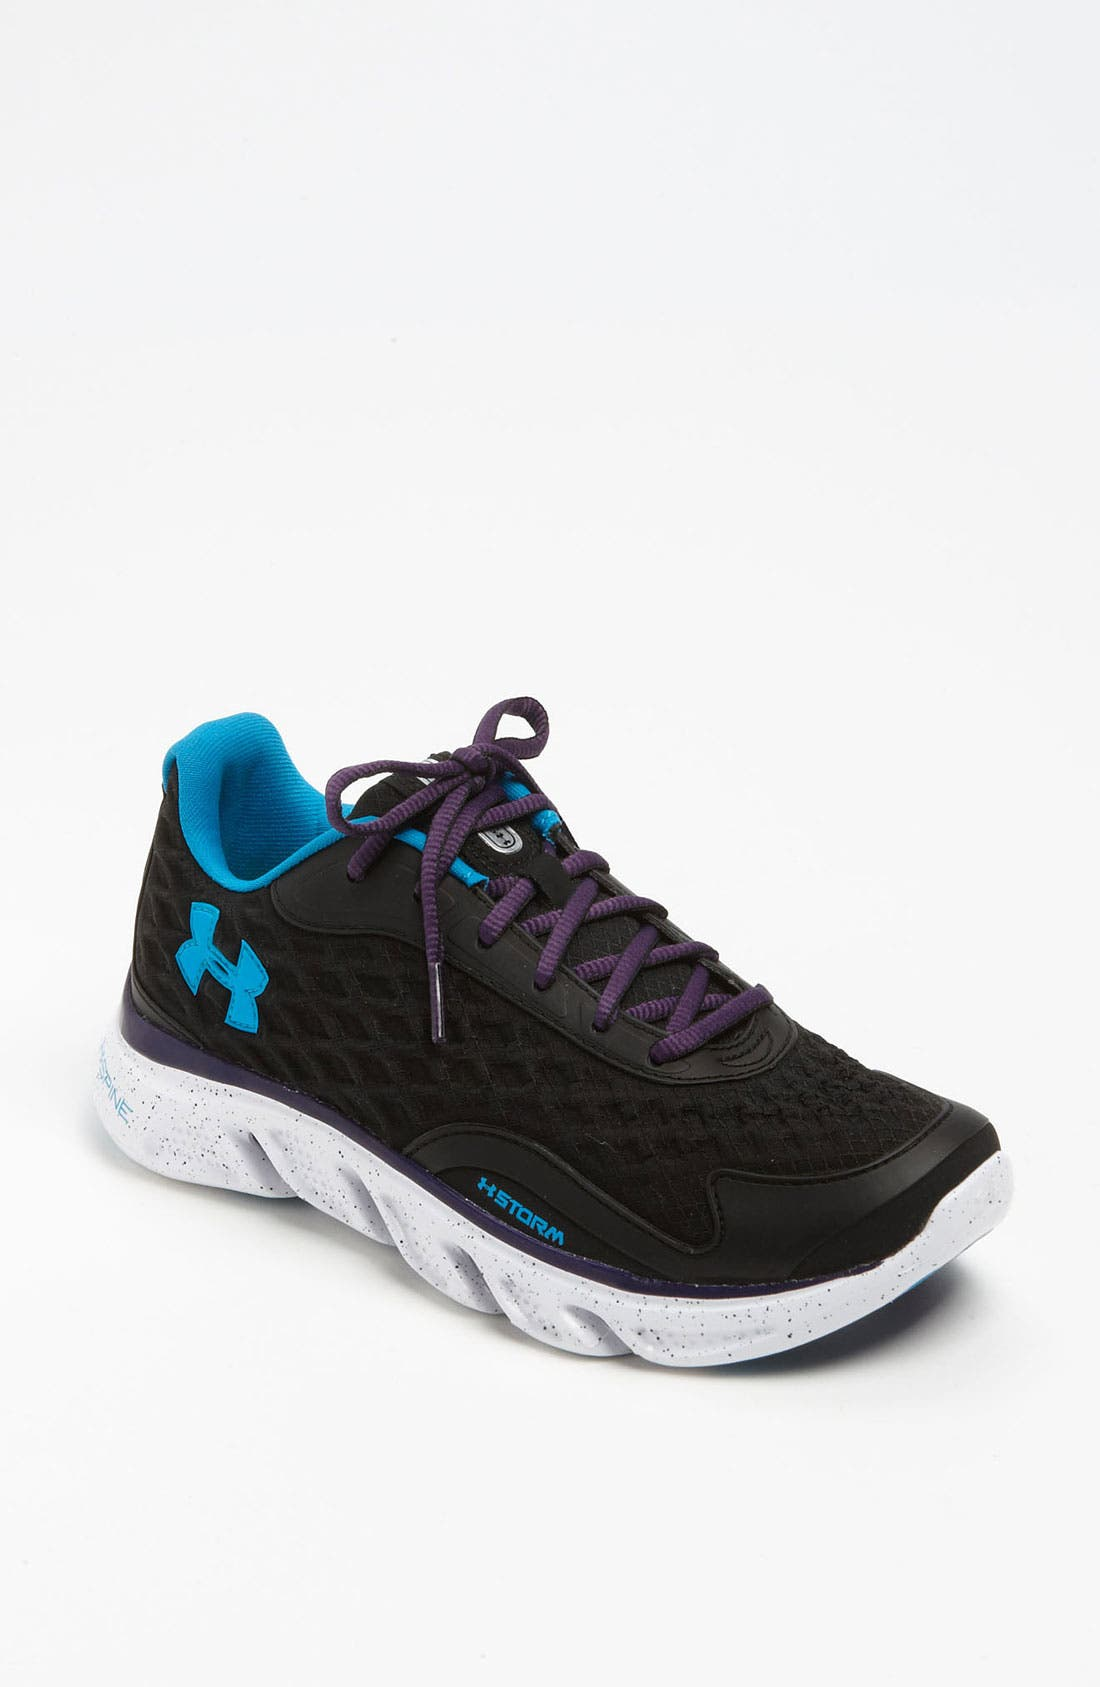 Main Image - Under Armour 'Spine RPM' Running Shoe (Women)